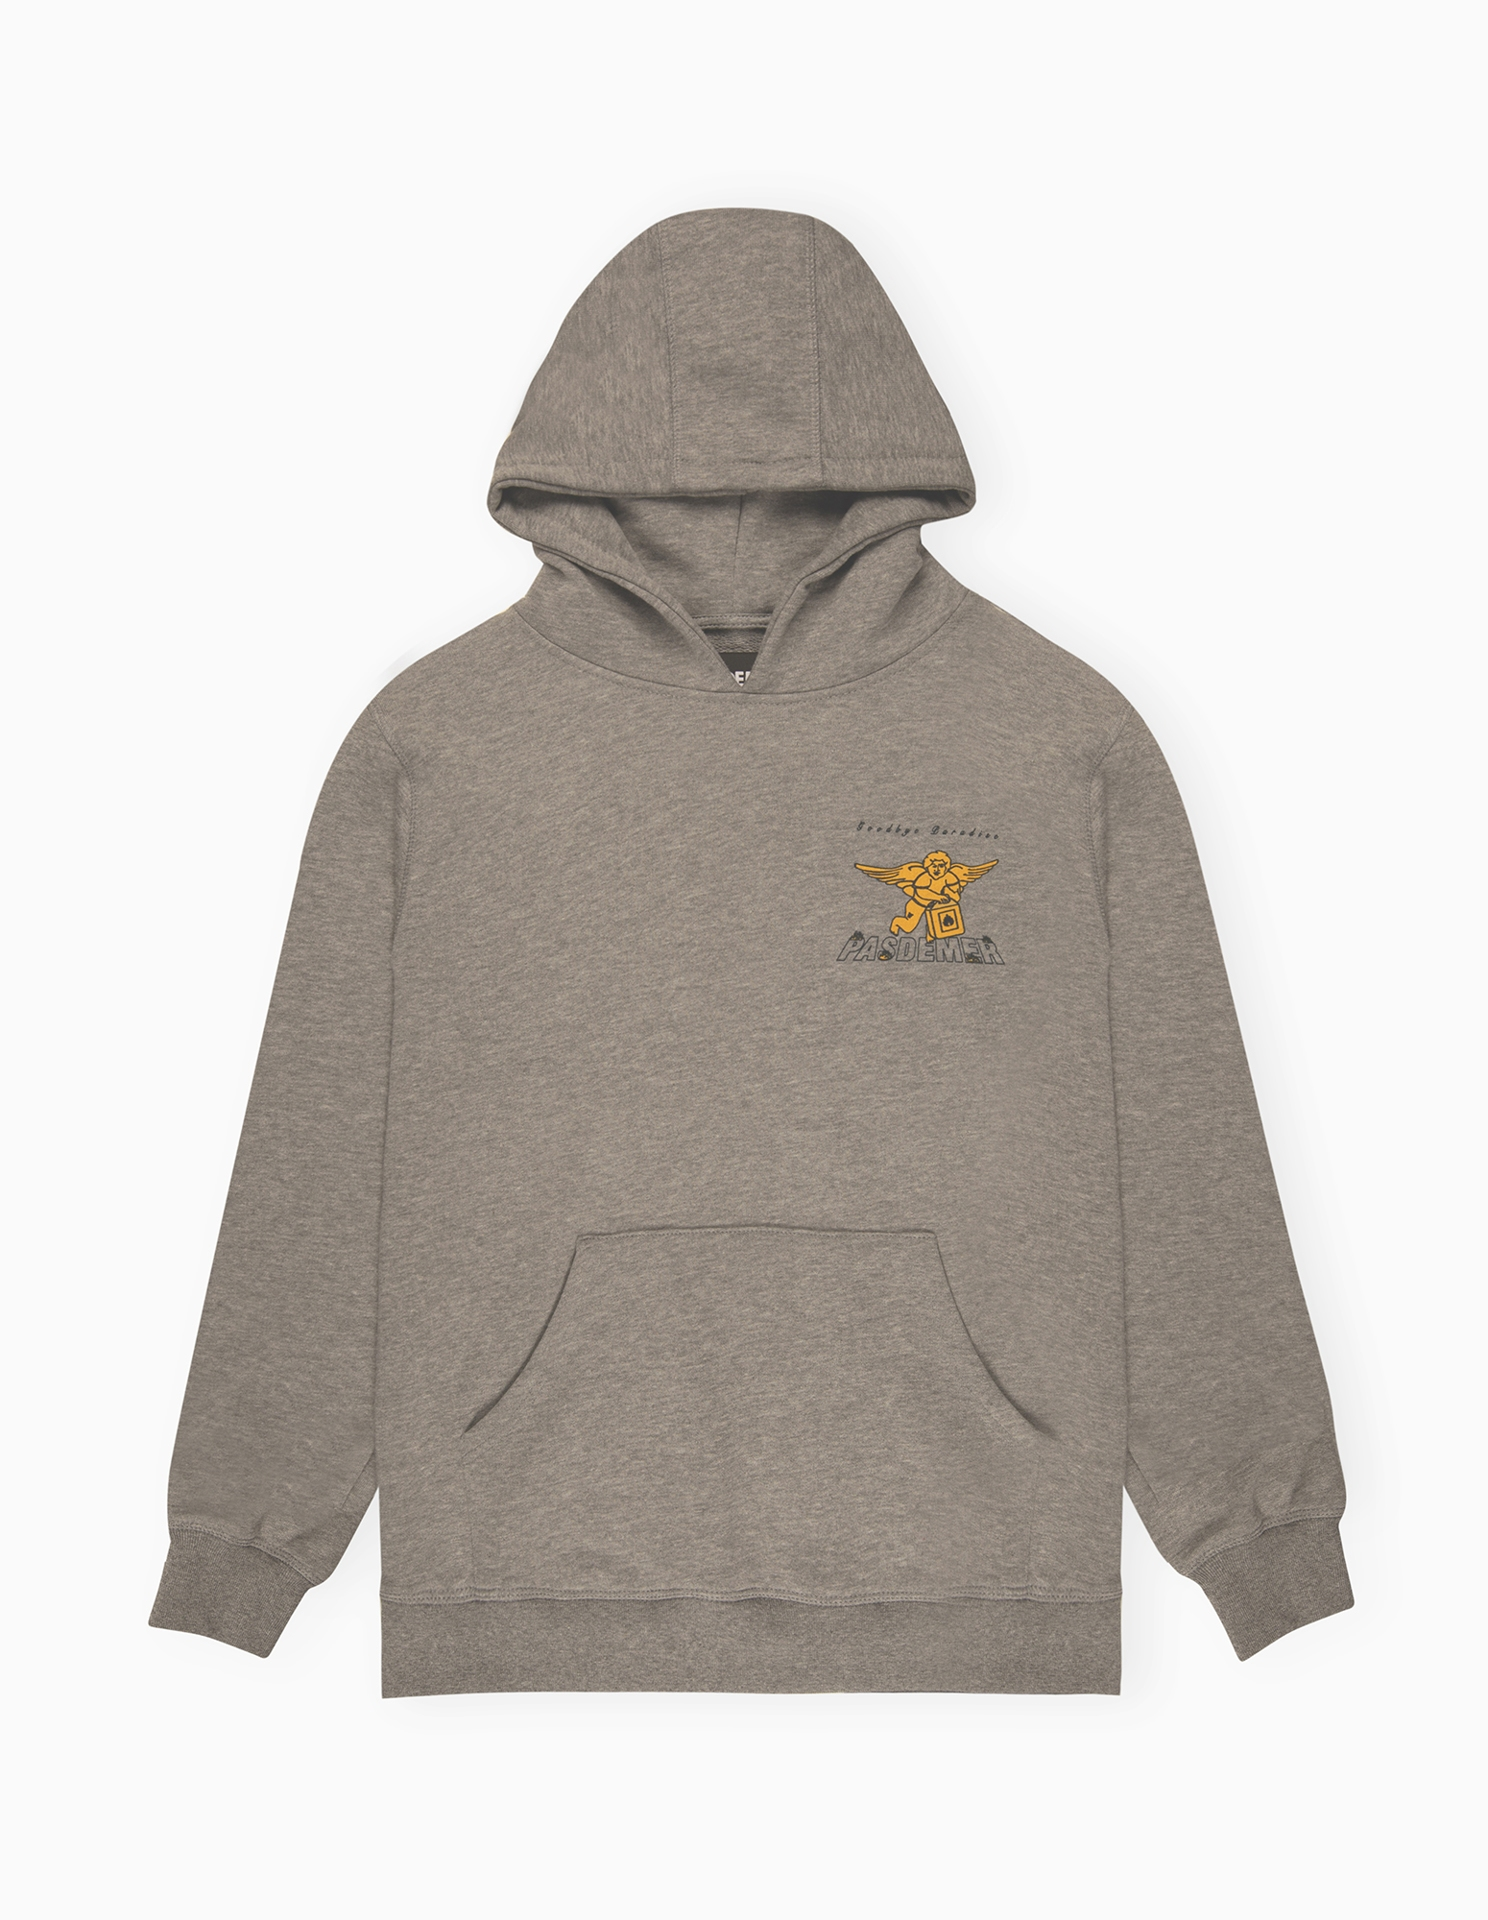 【PAS DE MER/パドゥメ】GOODBYE PARADISE LT.WEIGHT HOODY パーカー / GREY